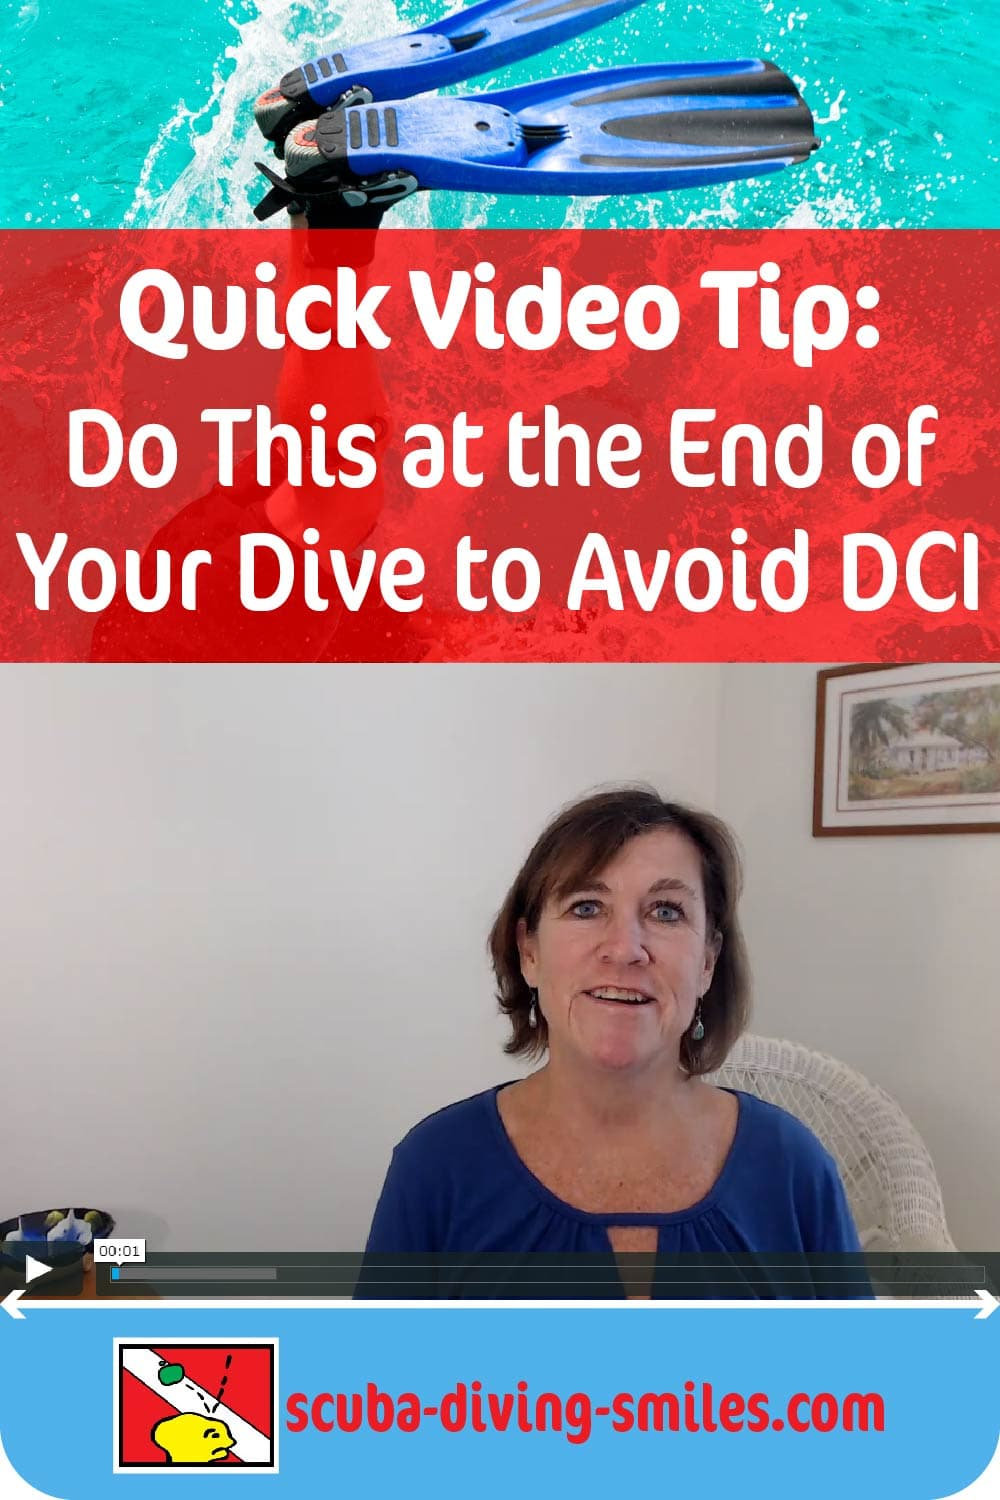 Scuba diving safety video tips for beginner scuba divers